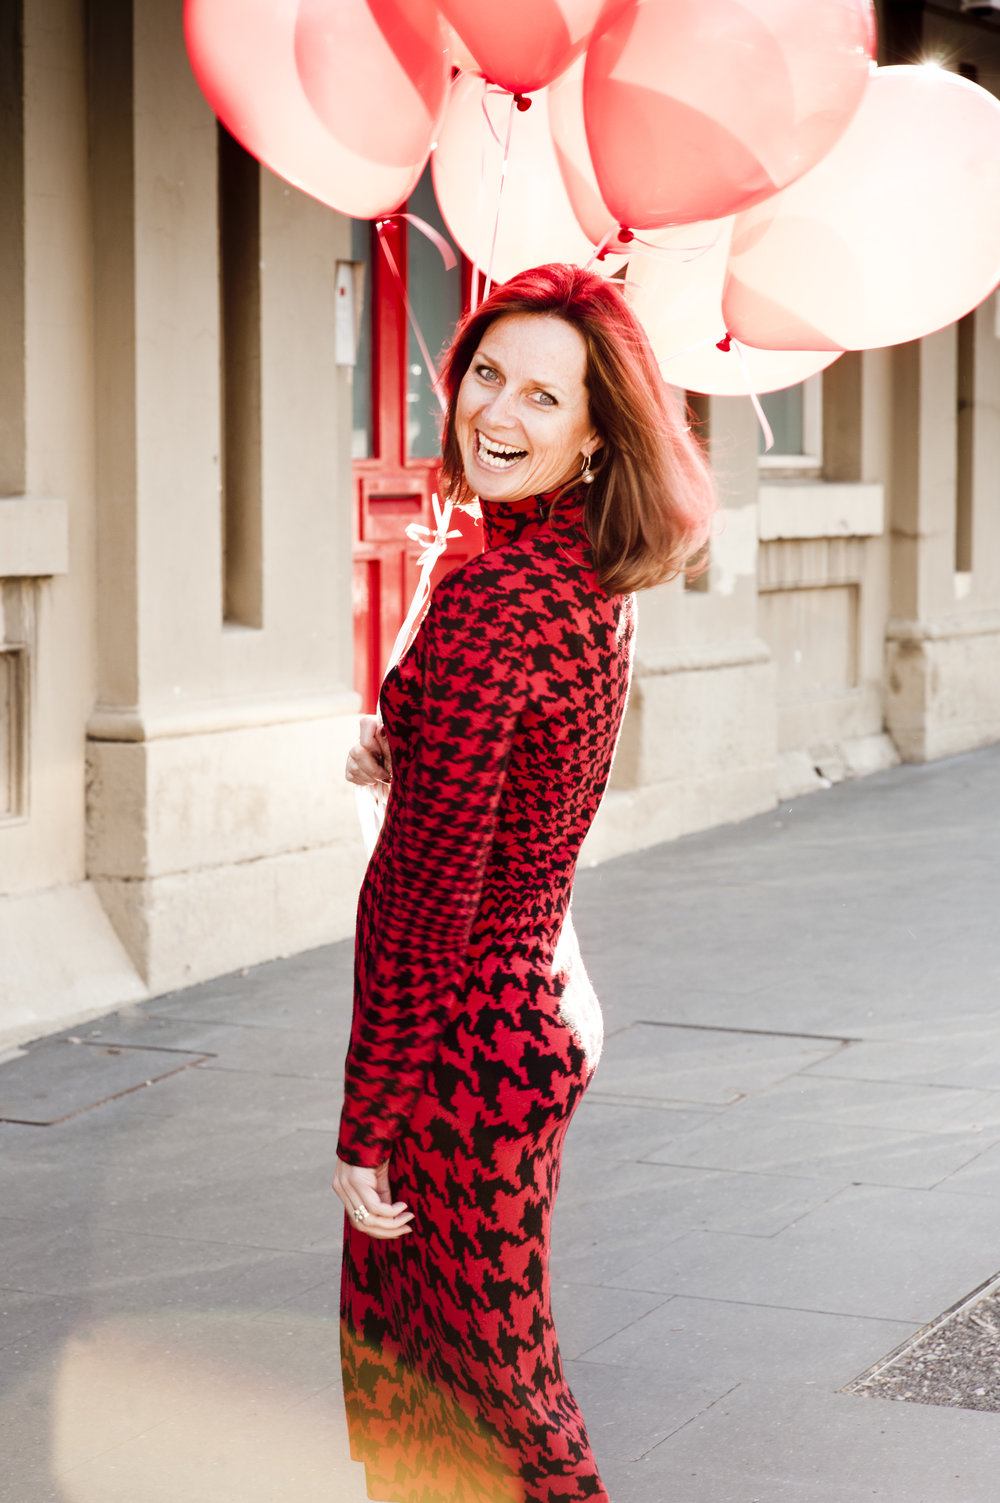 RedBalloon founder Naomi Simson is a master when it comes to consistent branding.